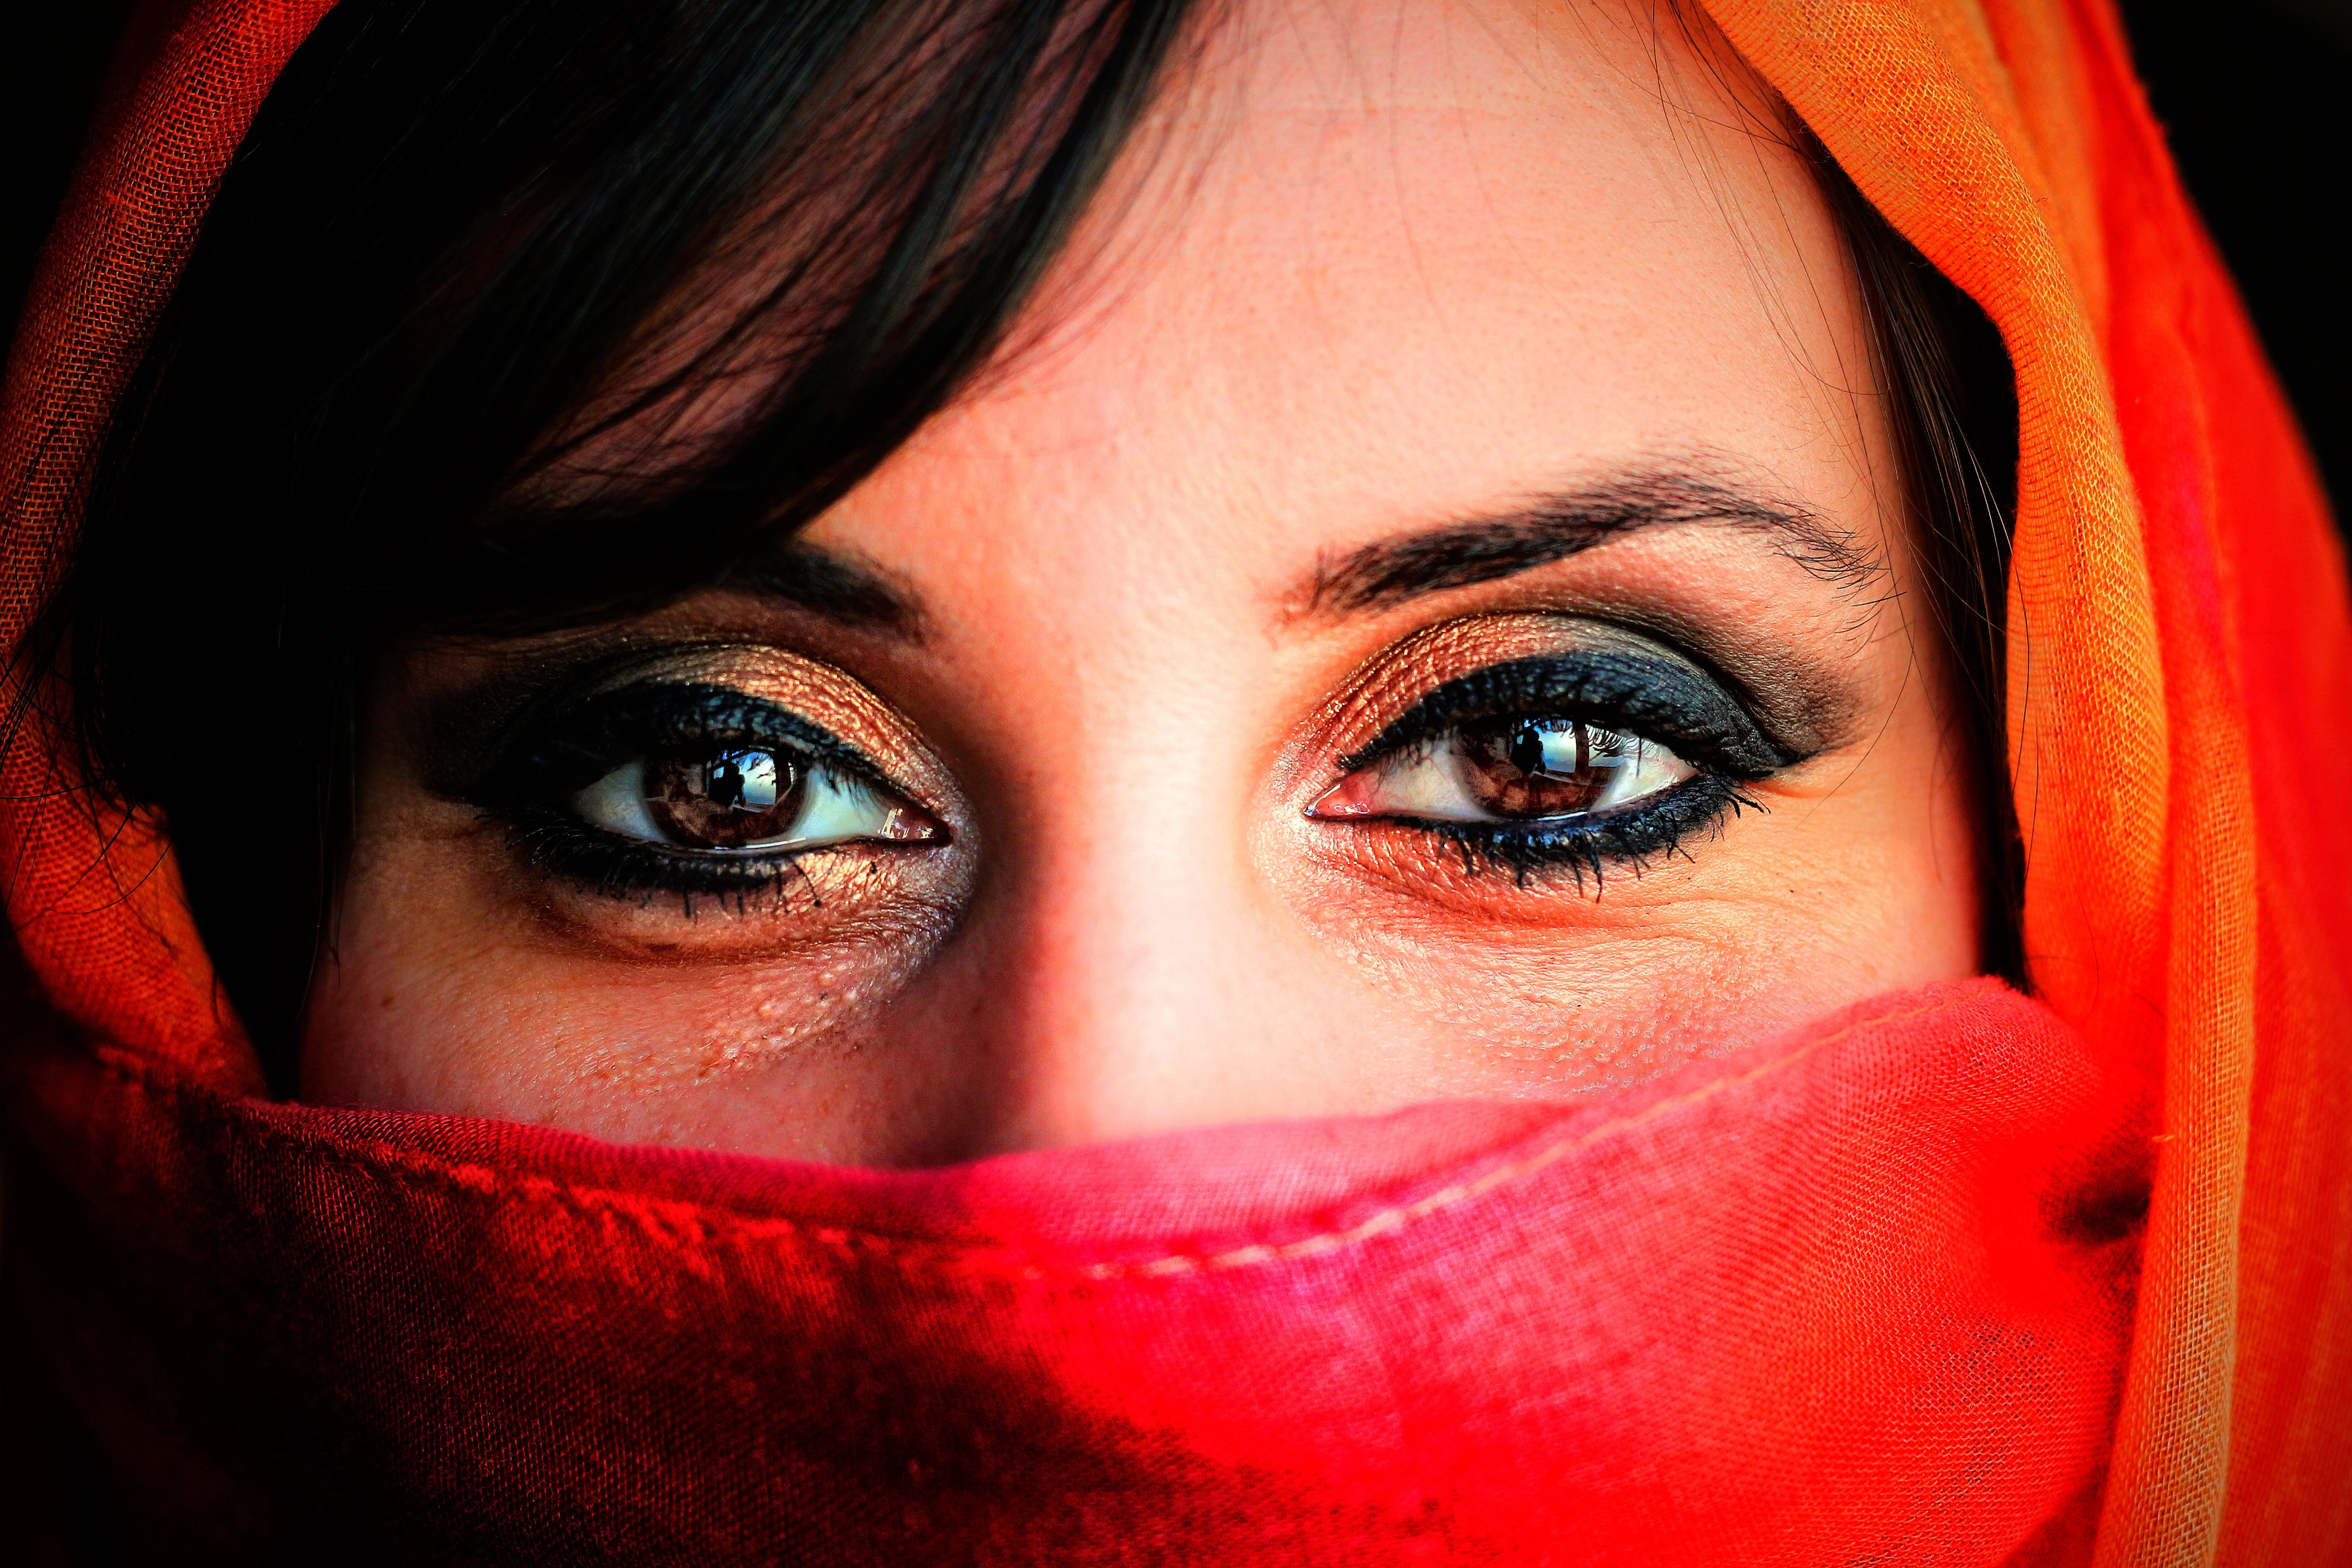 Woman Wearing Orange and Red Hijab Veil